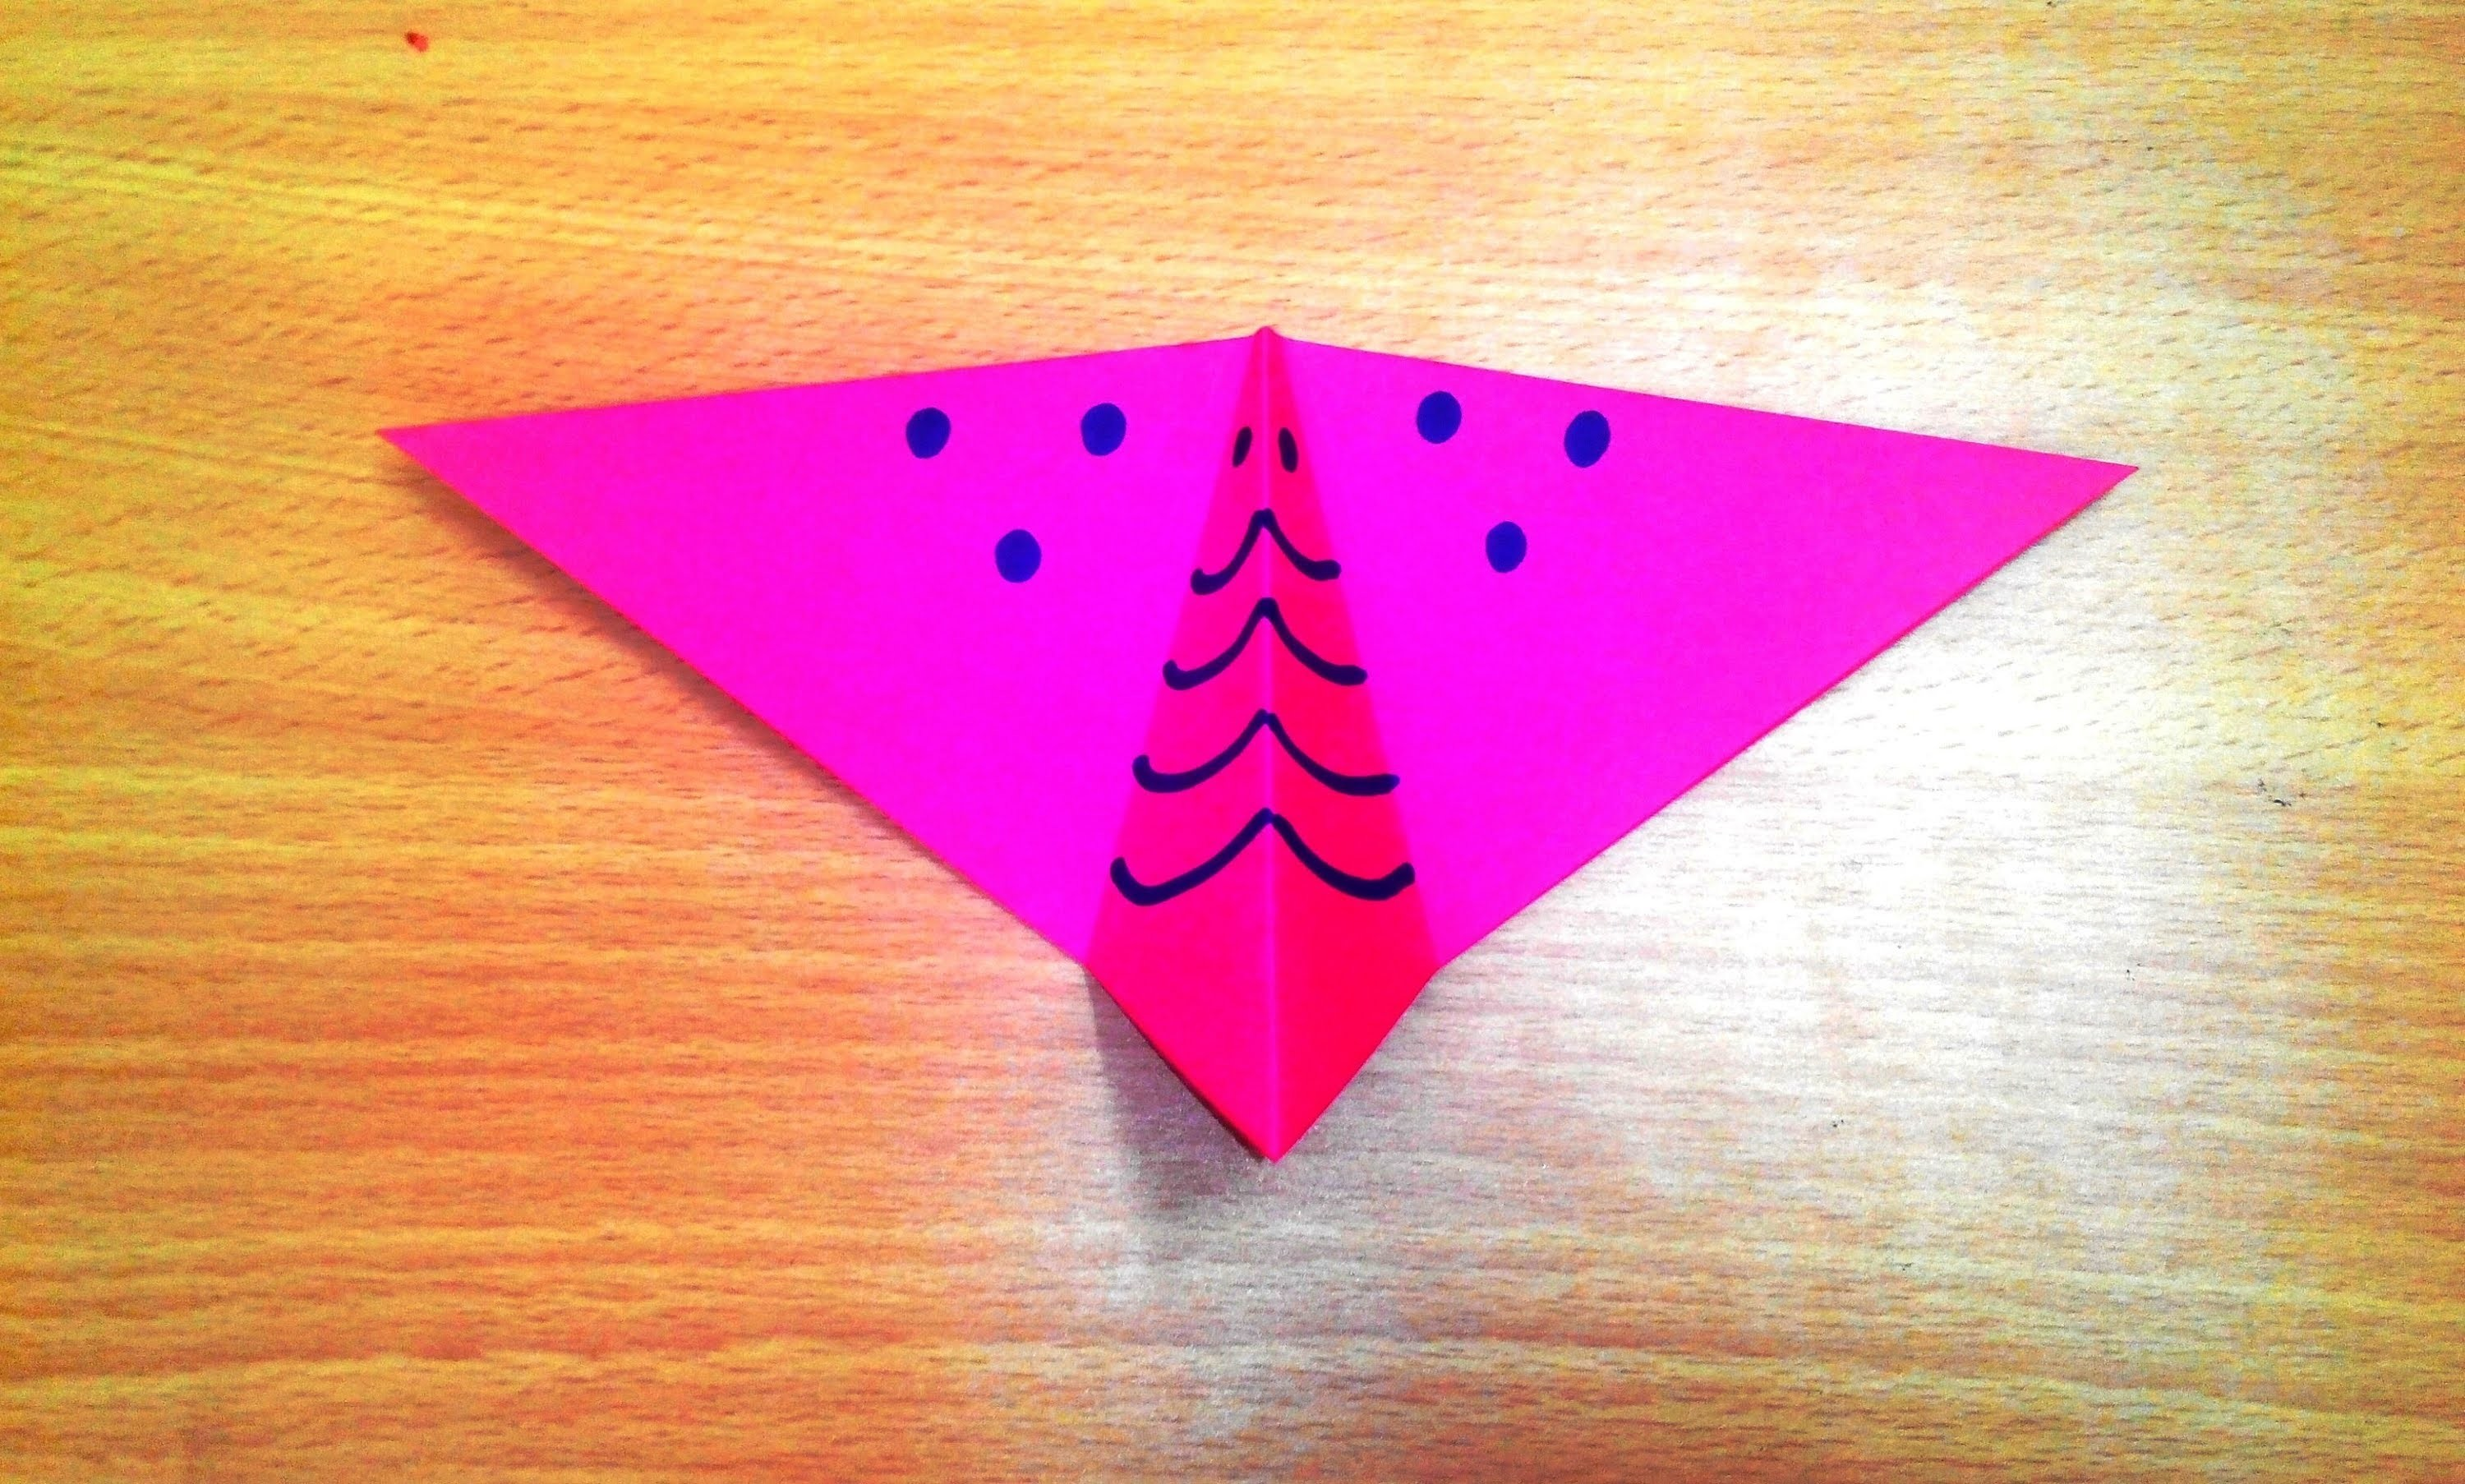 How to make an origami butterfly step by step.